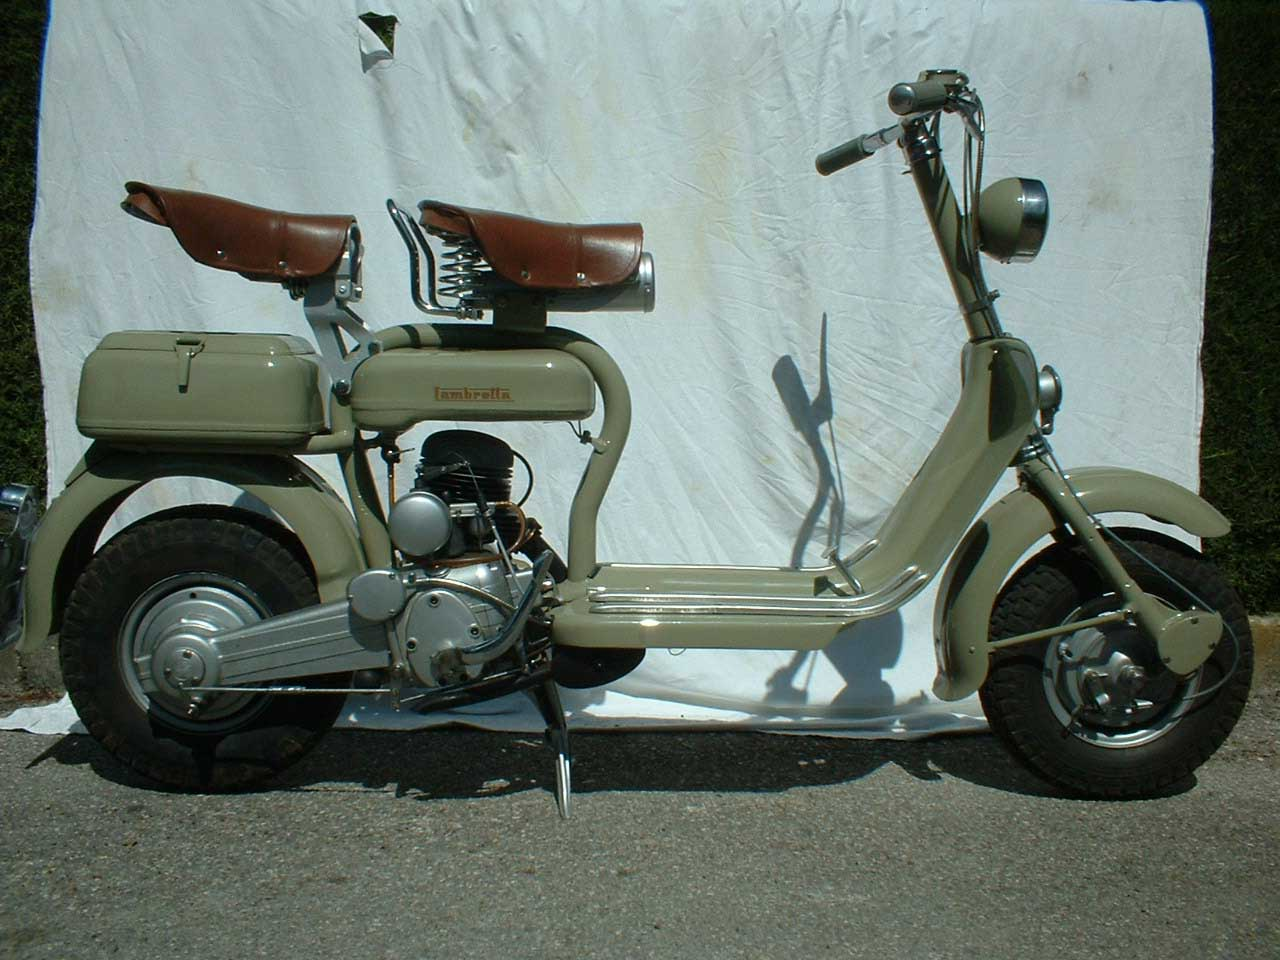 Innocenti lambretta photo - 4